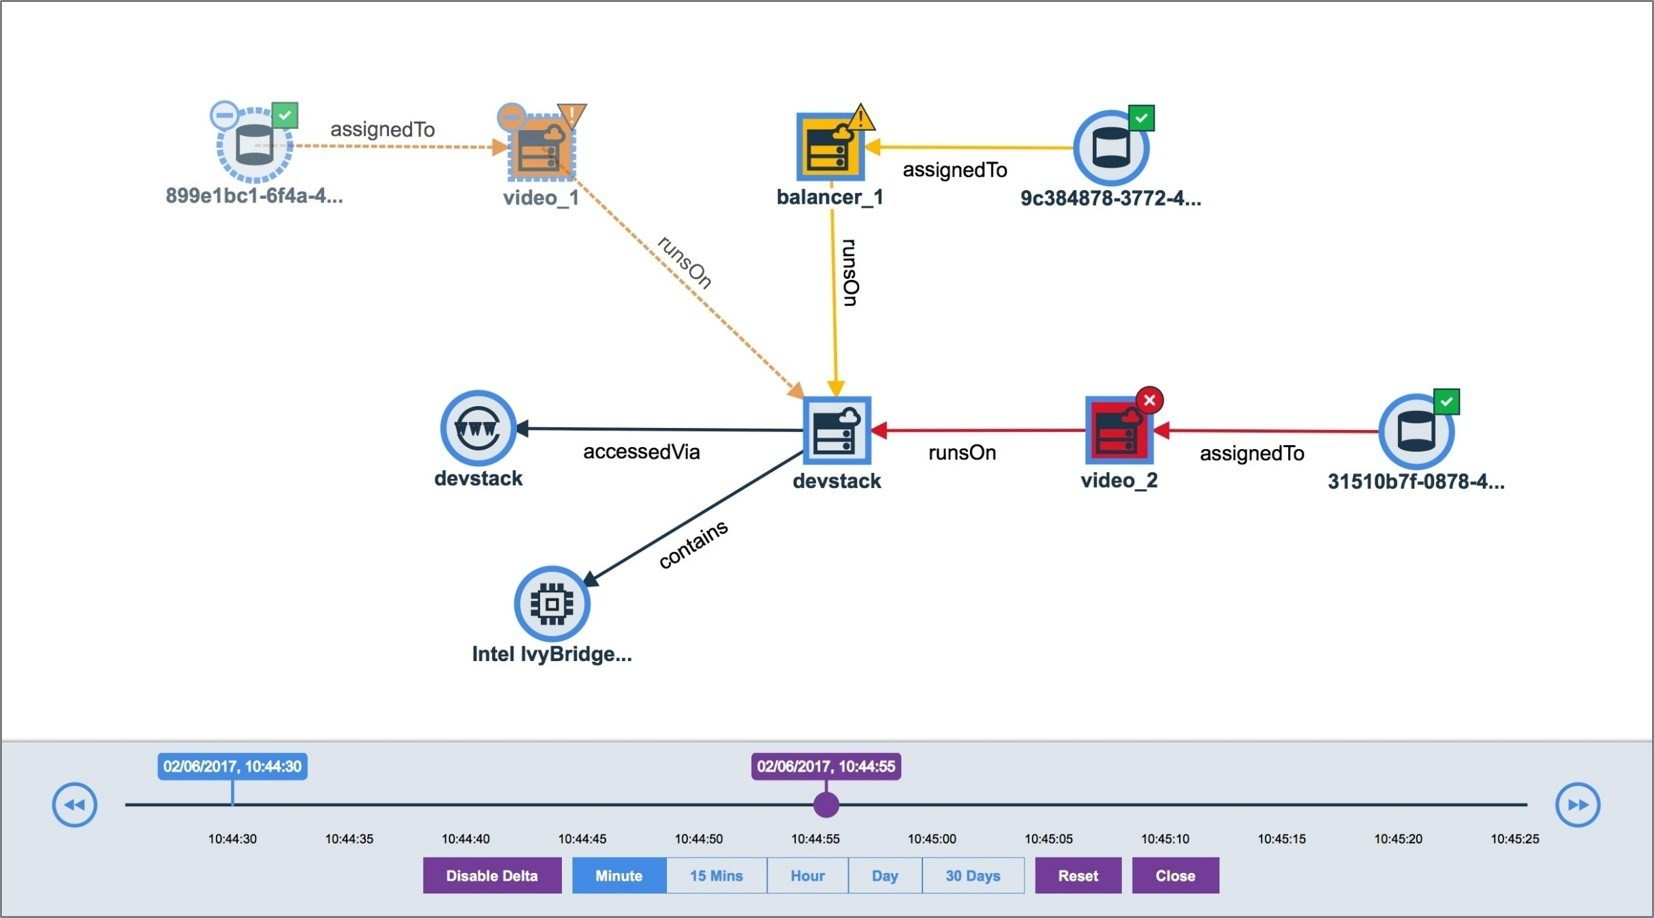 A new capability for IBM Netcool Operations Insight provides a visual map of the underlying infrastructure across a company's hybrid cloud network, including public cloud and on-premises systems. This example shows the assets supporting a cloud-based video conferencing services.